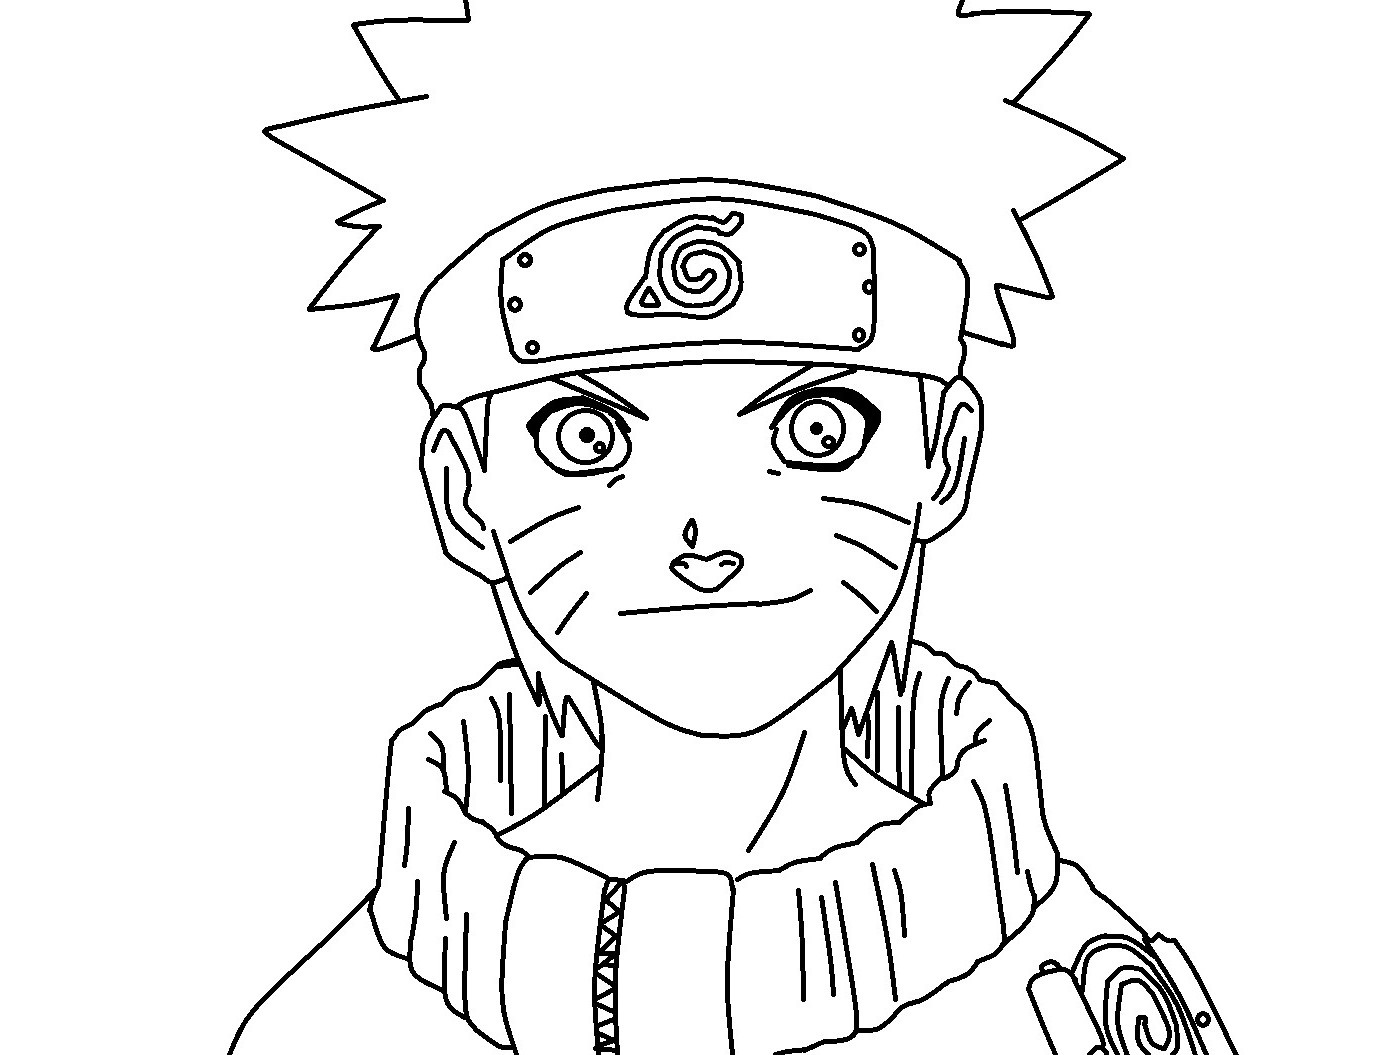 Naruto_Coloring_Pages_01